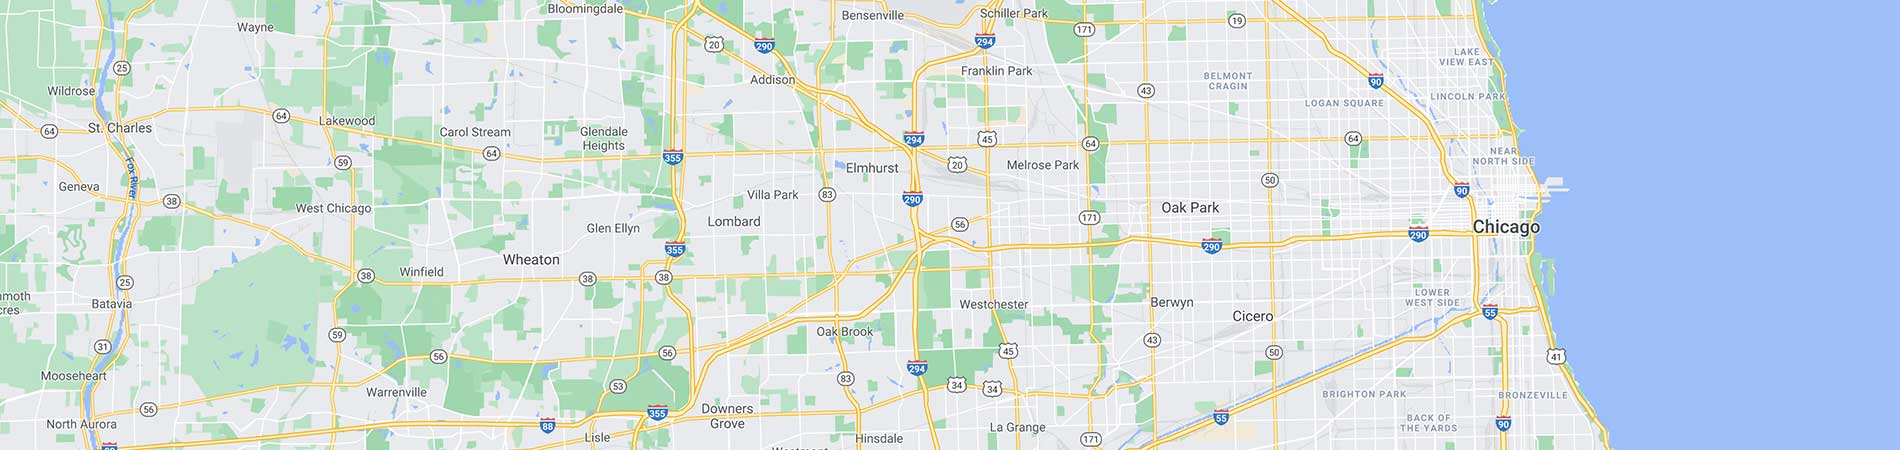 Wiers Mobile Service Map Chicago IL